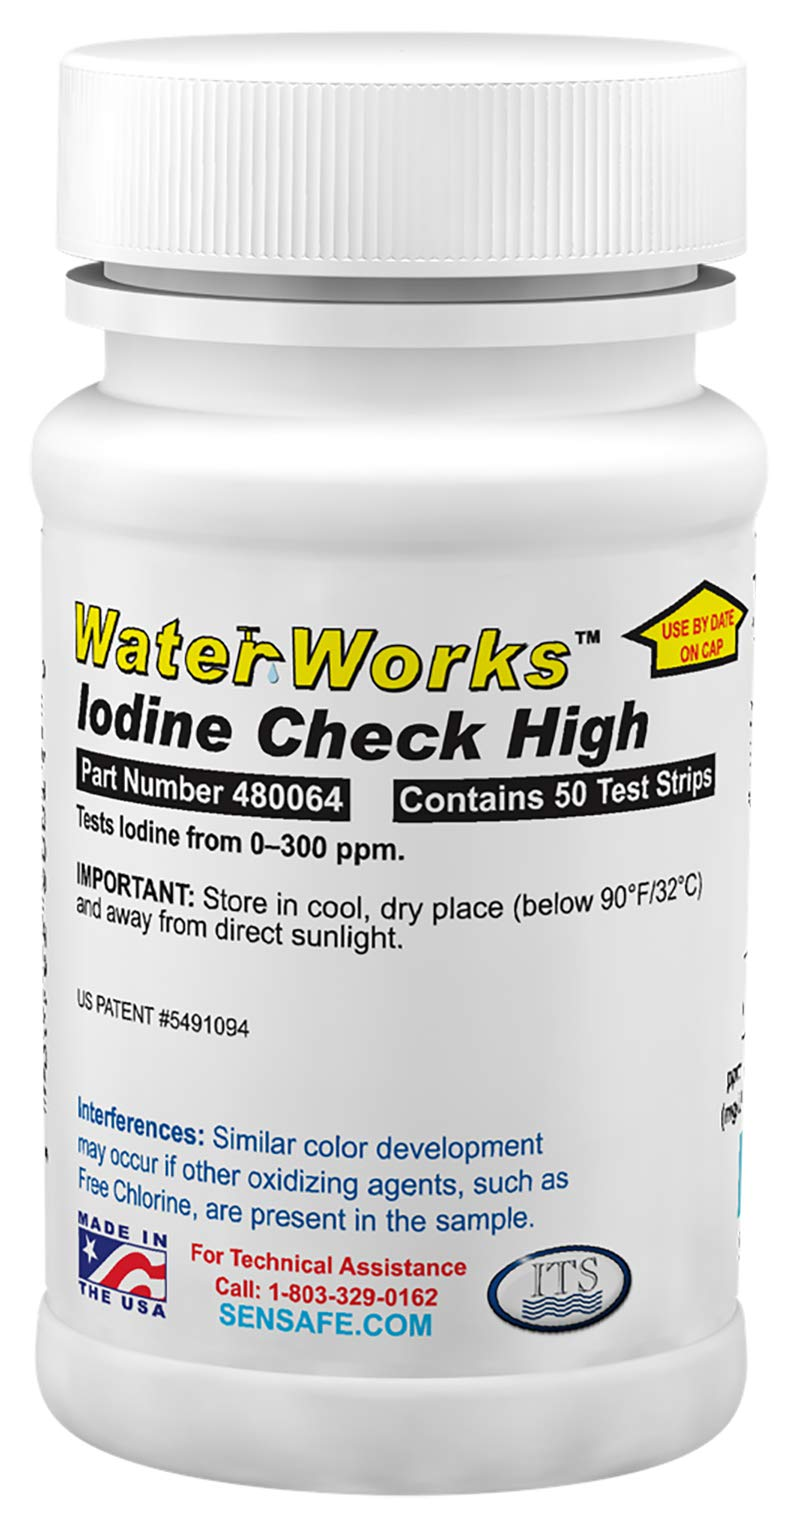 Industrial Test Systems WaterWorks 480064 Iodine Test Strip, 32 Second Test Time, 0-300ppm Range (Bottle of 50) by Industrial Test Systems